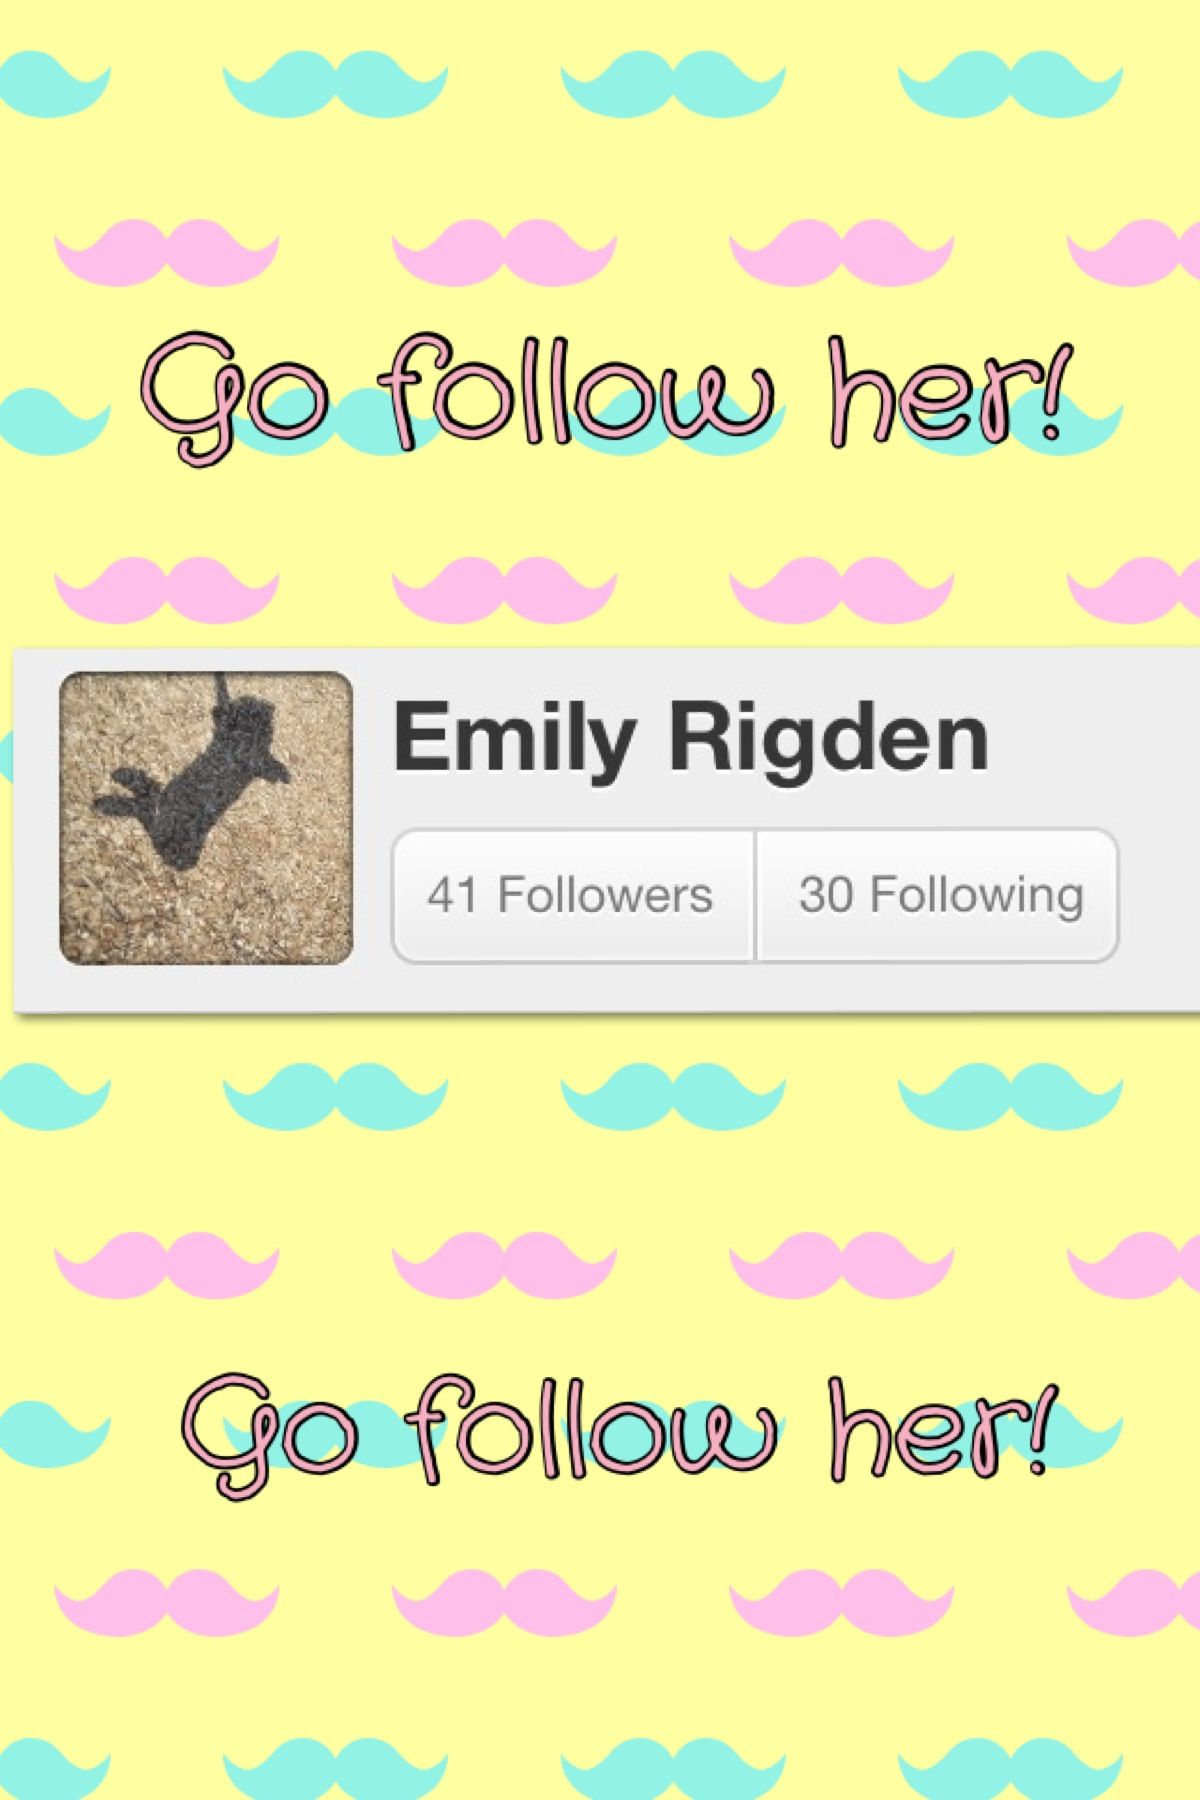 Shout out for my friend Emily!!! Go follow her everybody! I'll tag her below!